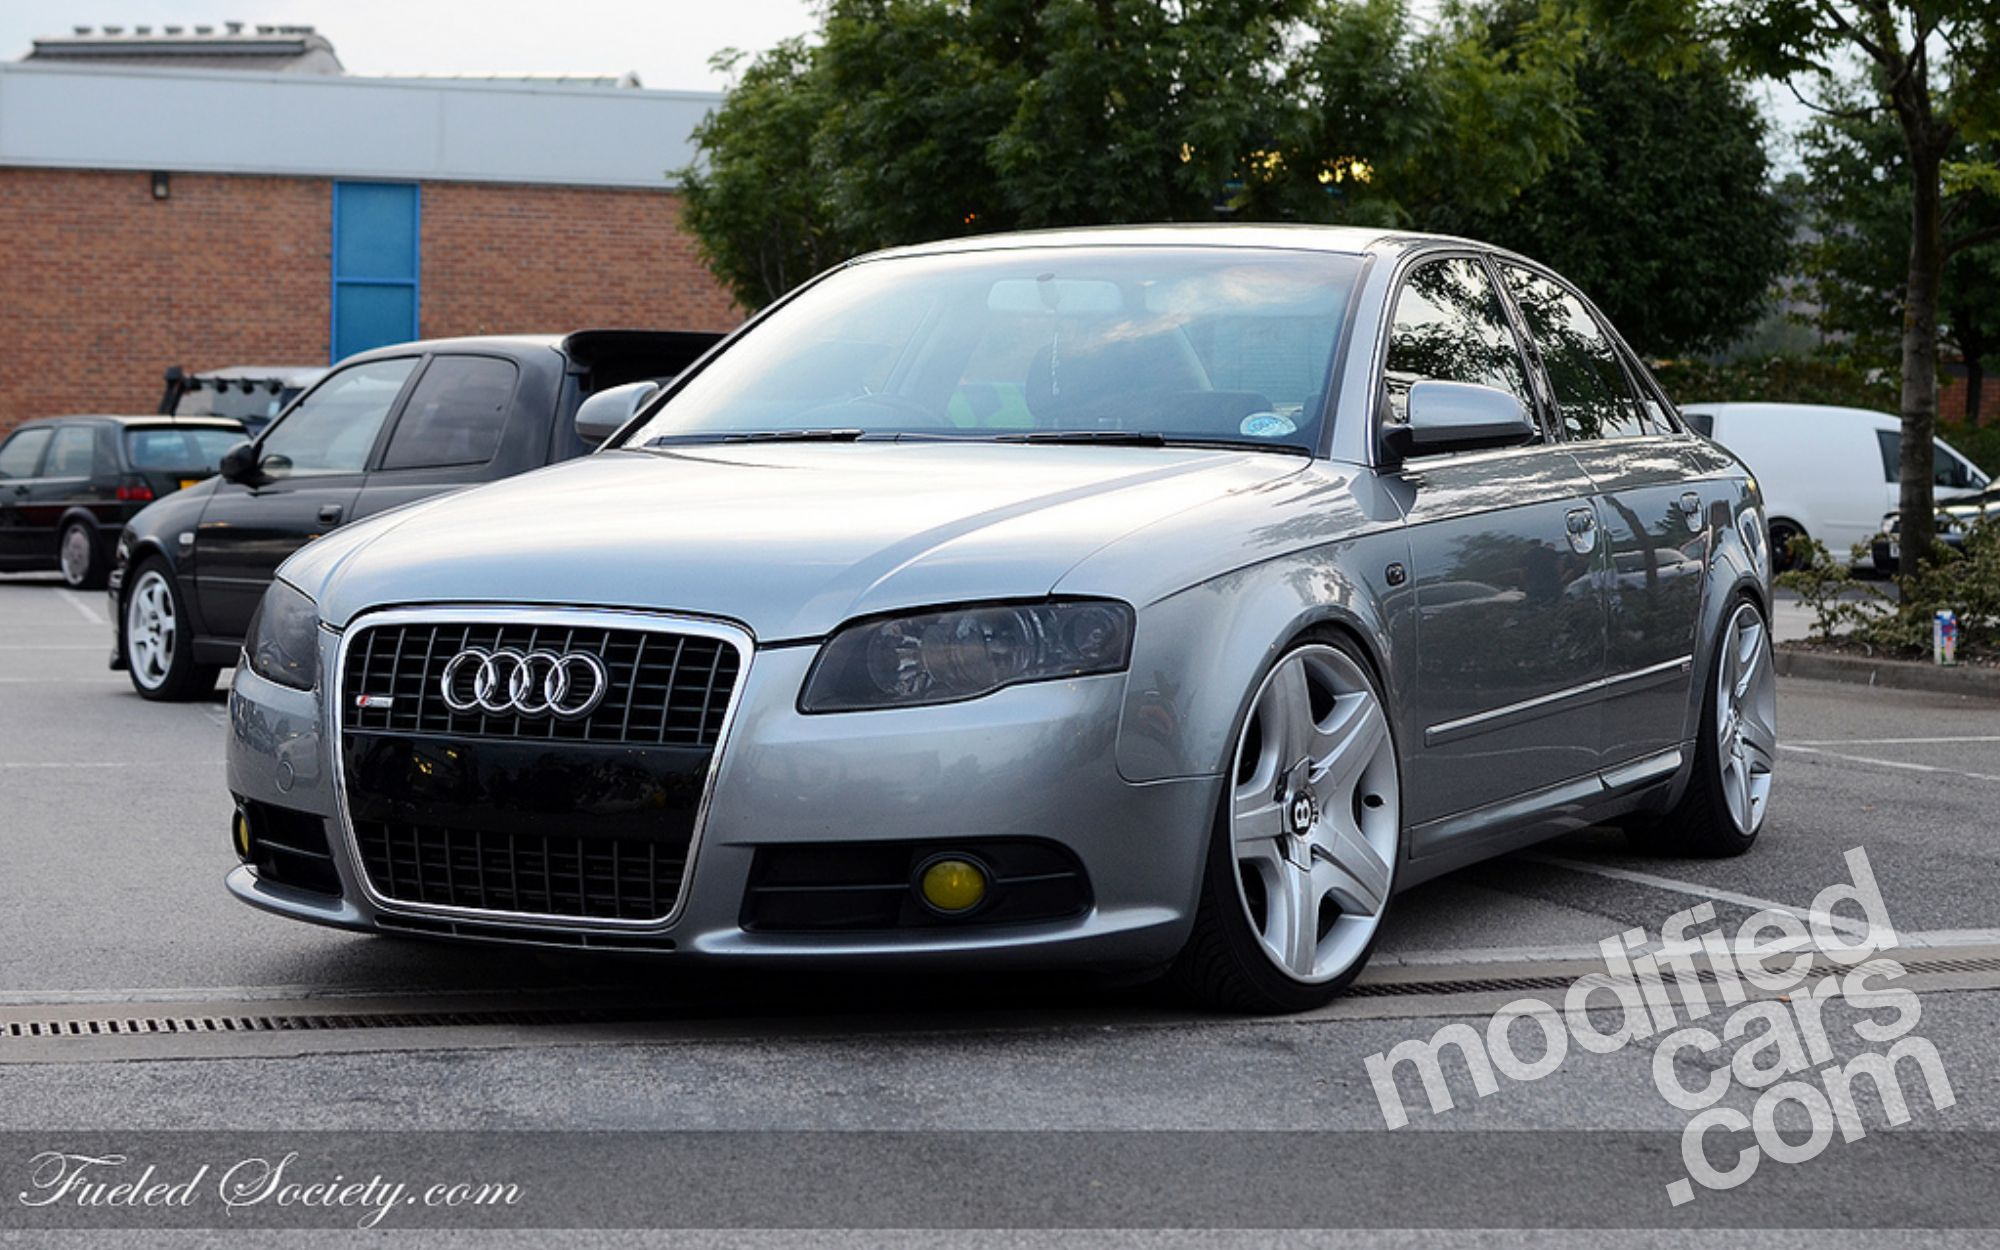 audi a4 tdi s line picture 8 reviews news specs buy car. Black Bedroom Furniture Sets. Home Design Ideas